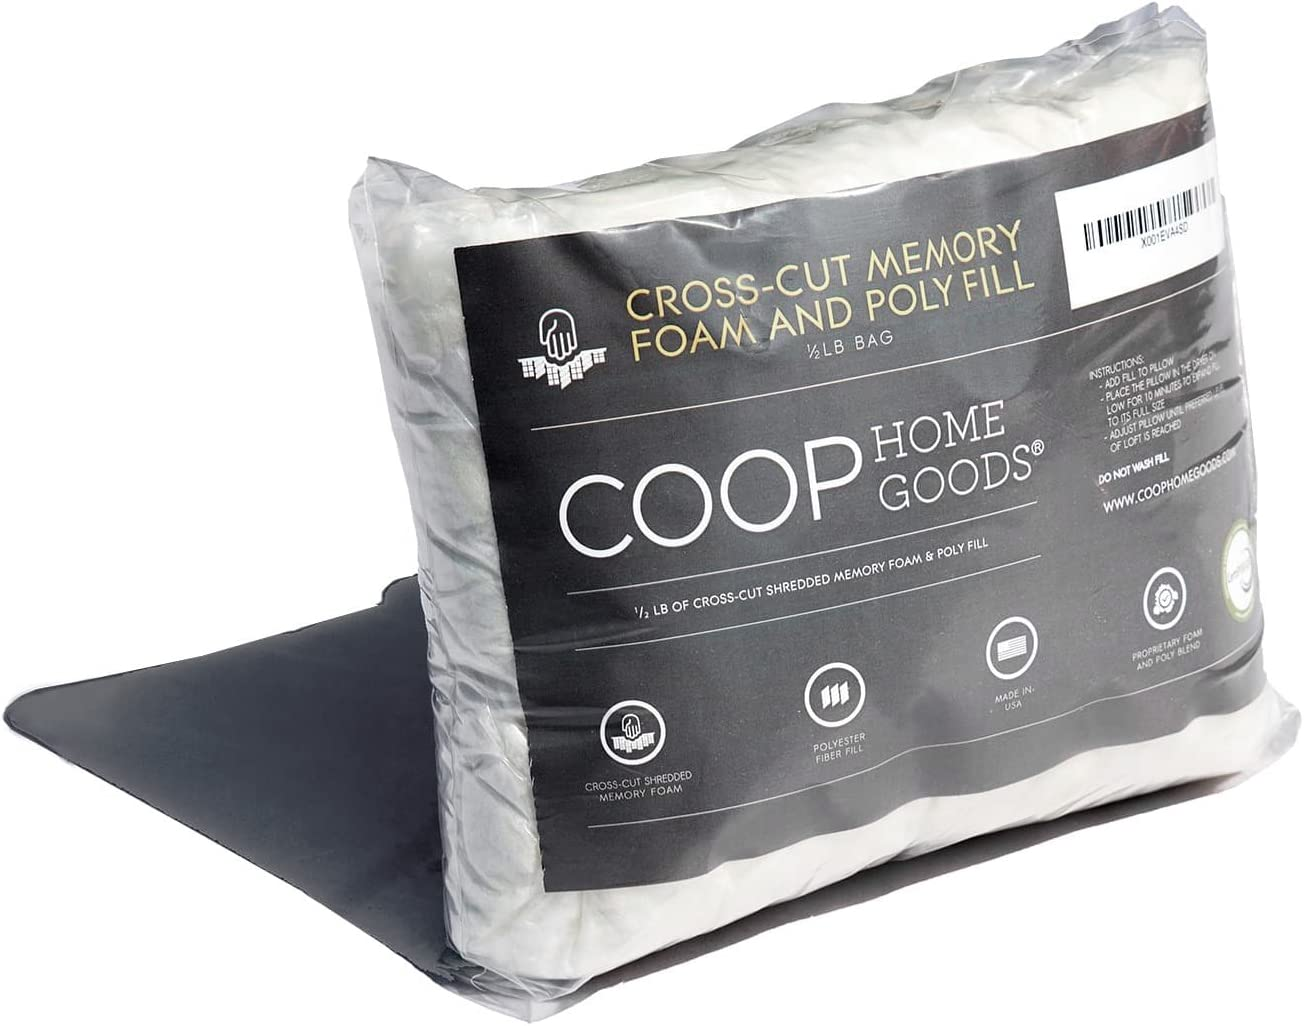 Coop Home Goods - Medium Density Cross-Cut Fill for Premium Adjustable Loft Pillow - ½ lb - CertiPUR-US Certified